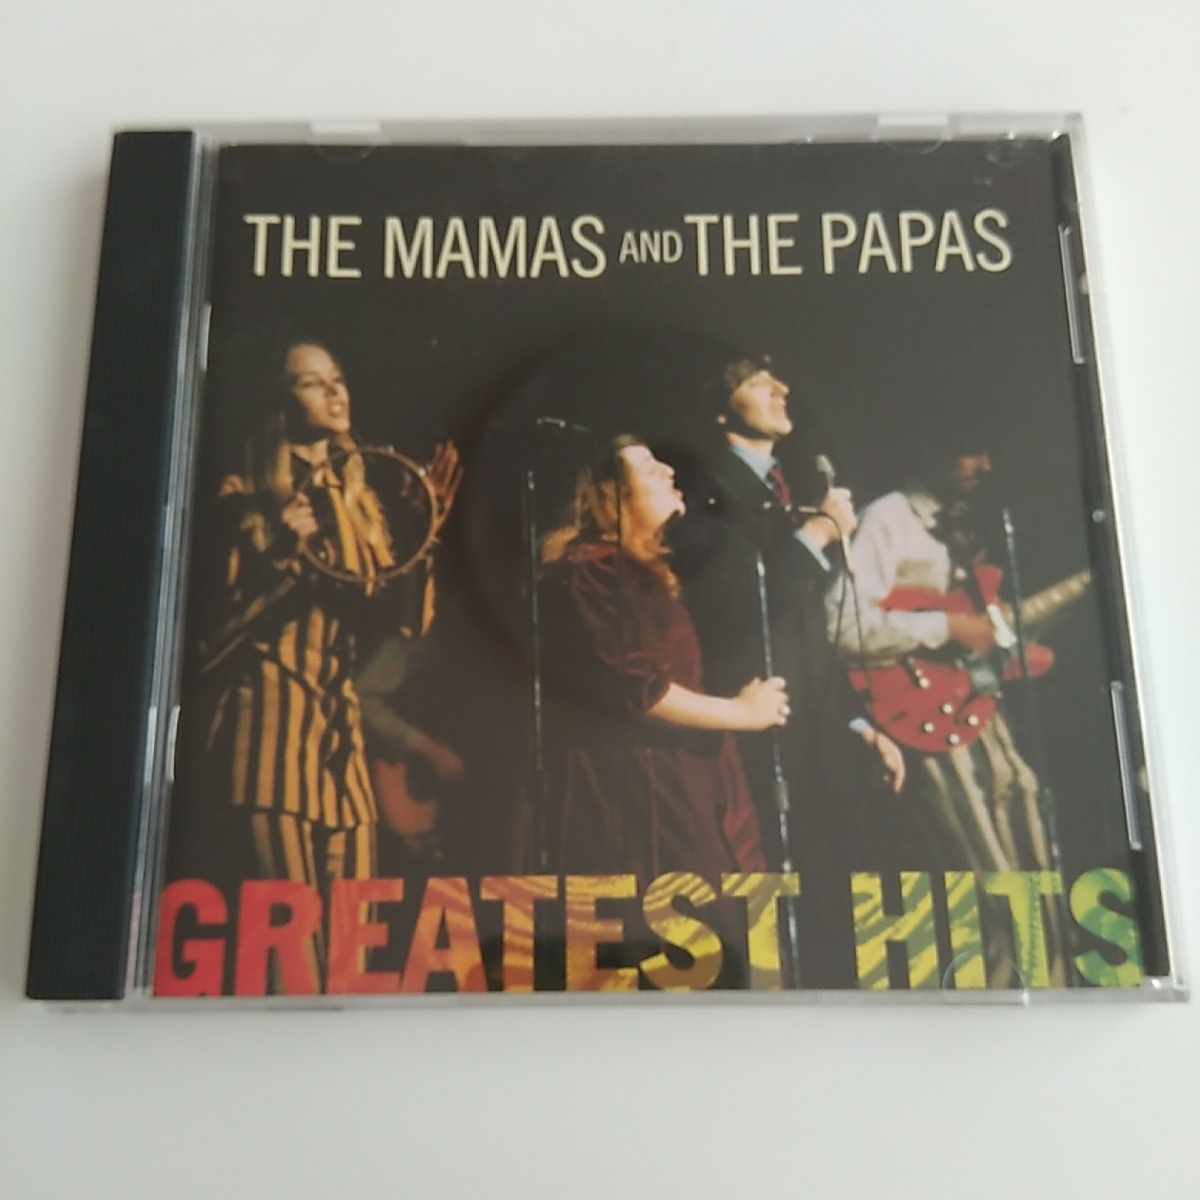 THE MAMAS AND THE PAPAS GREATEST HITS 中古CD